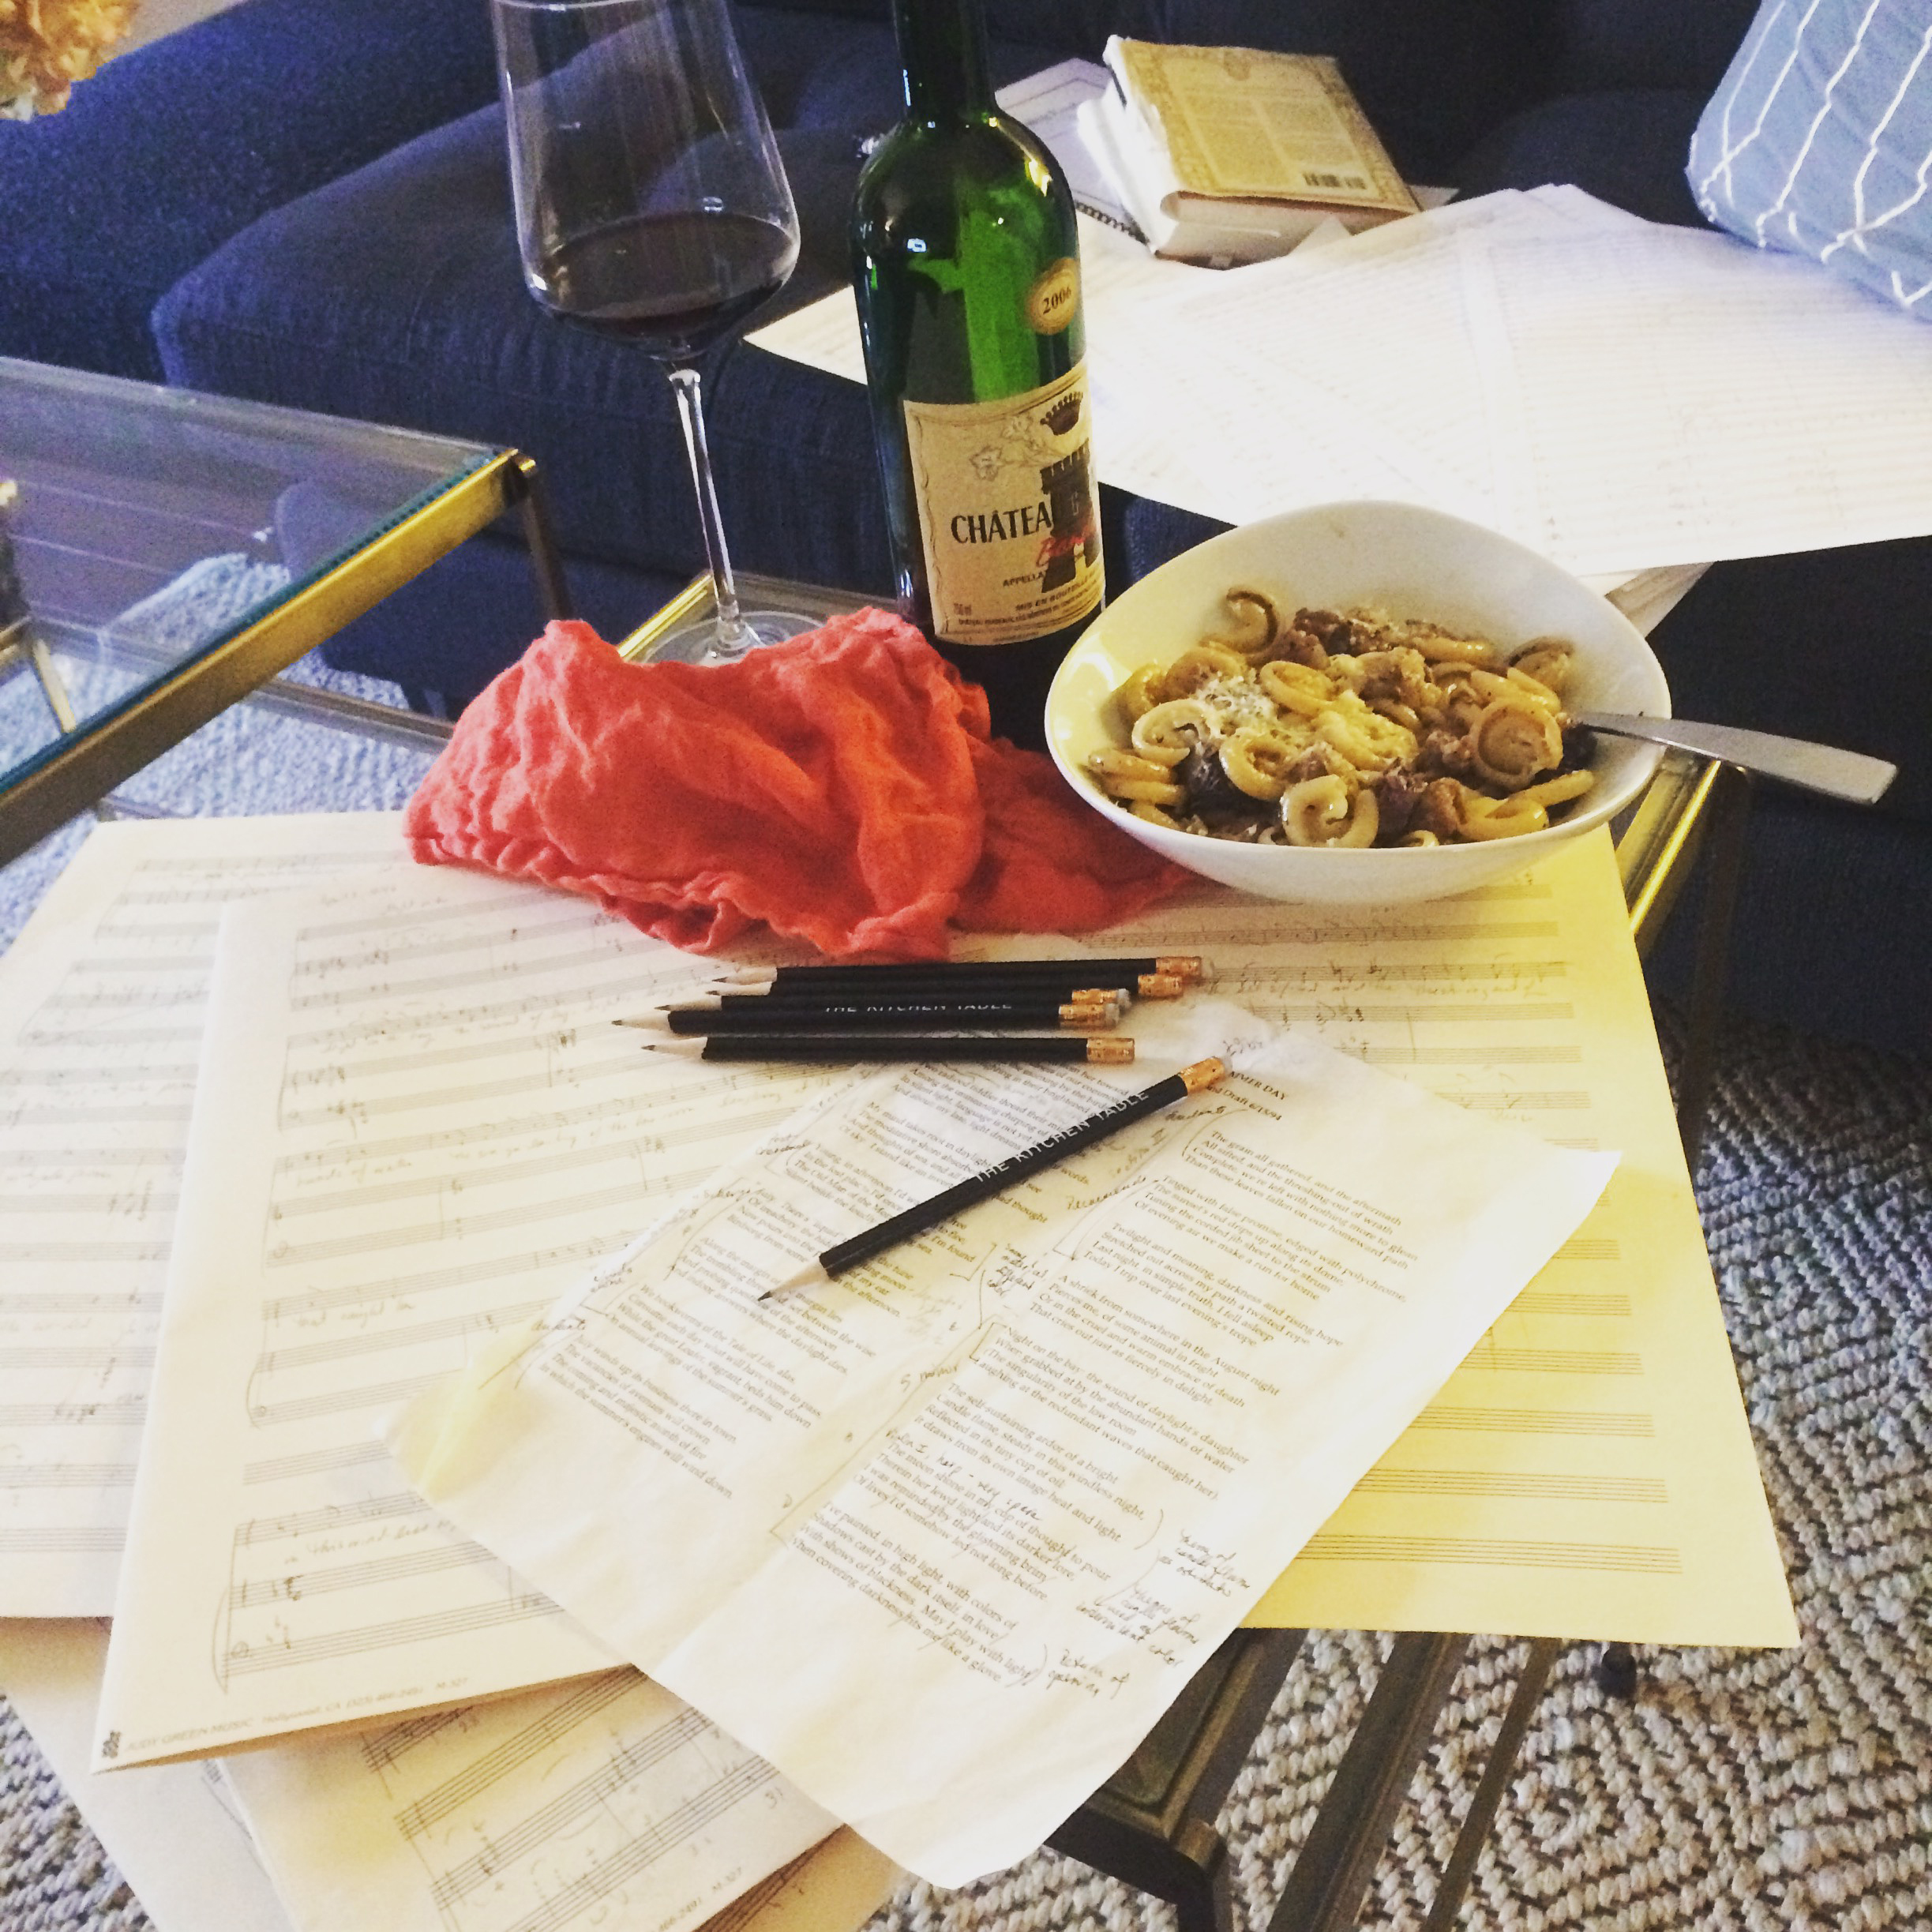 A table with pages of score manuscript paper, pens, a glass of red wine, a wine bottle, and a bowl of pasta